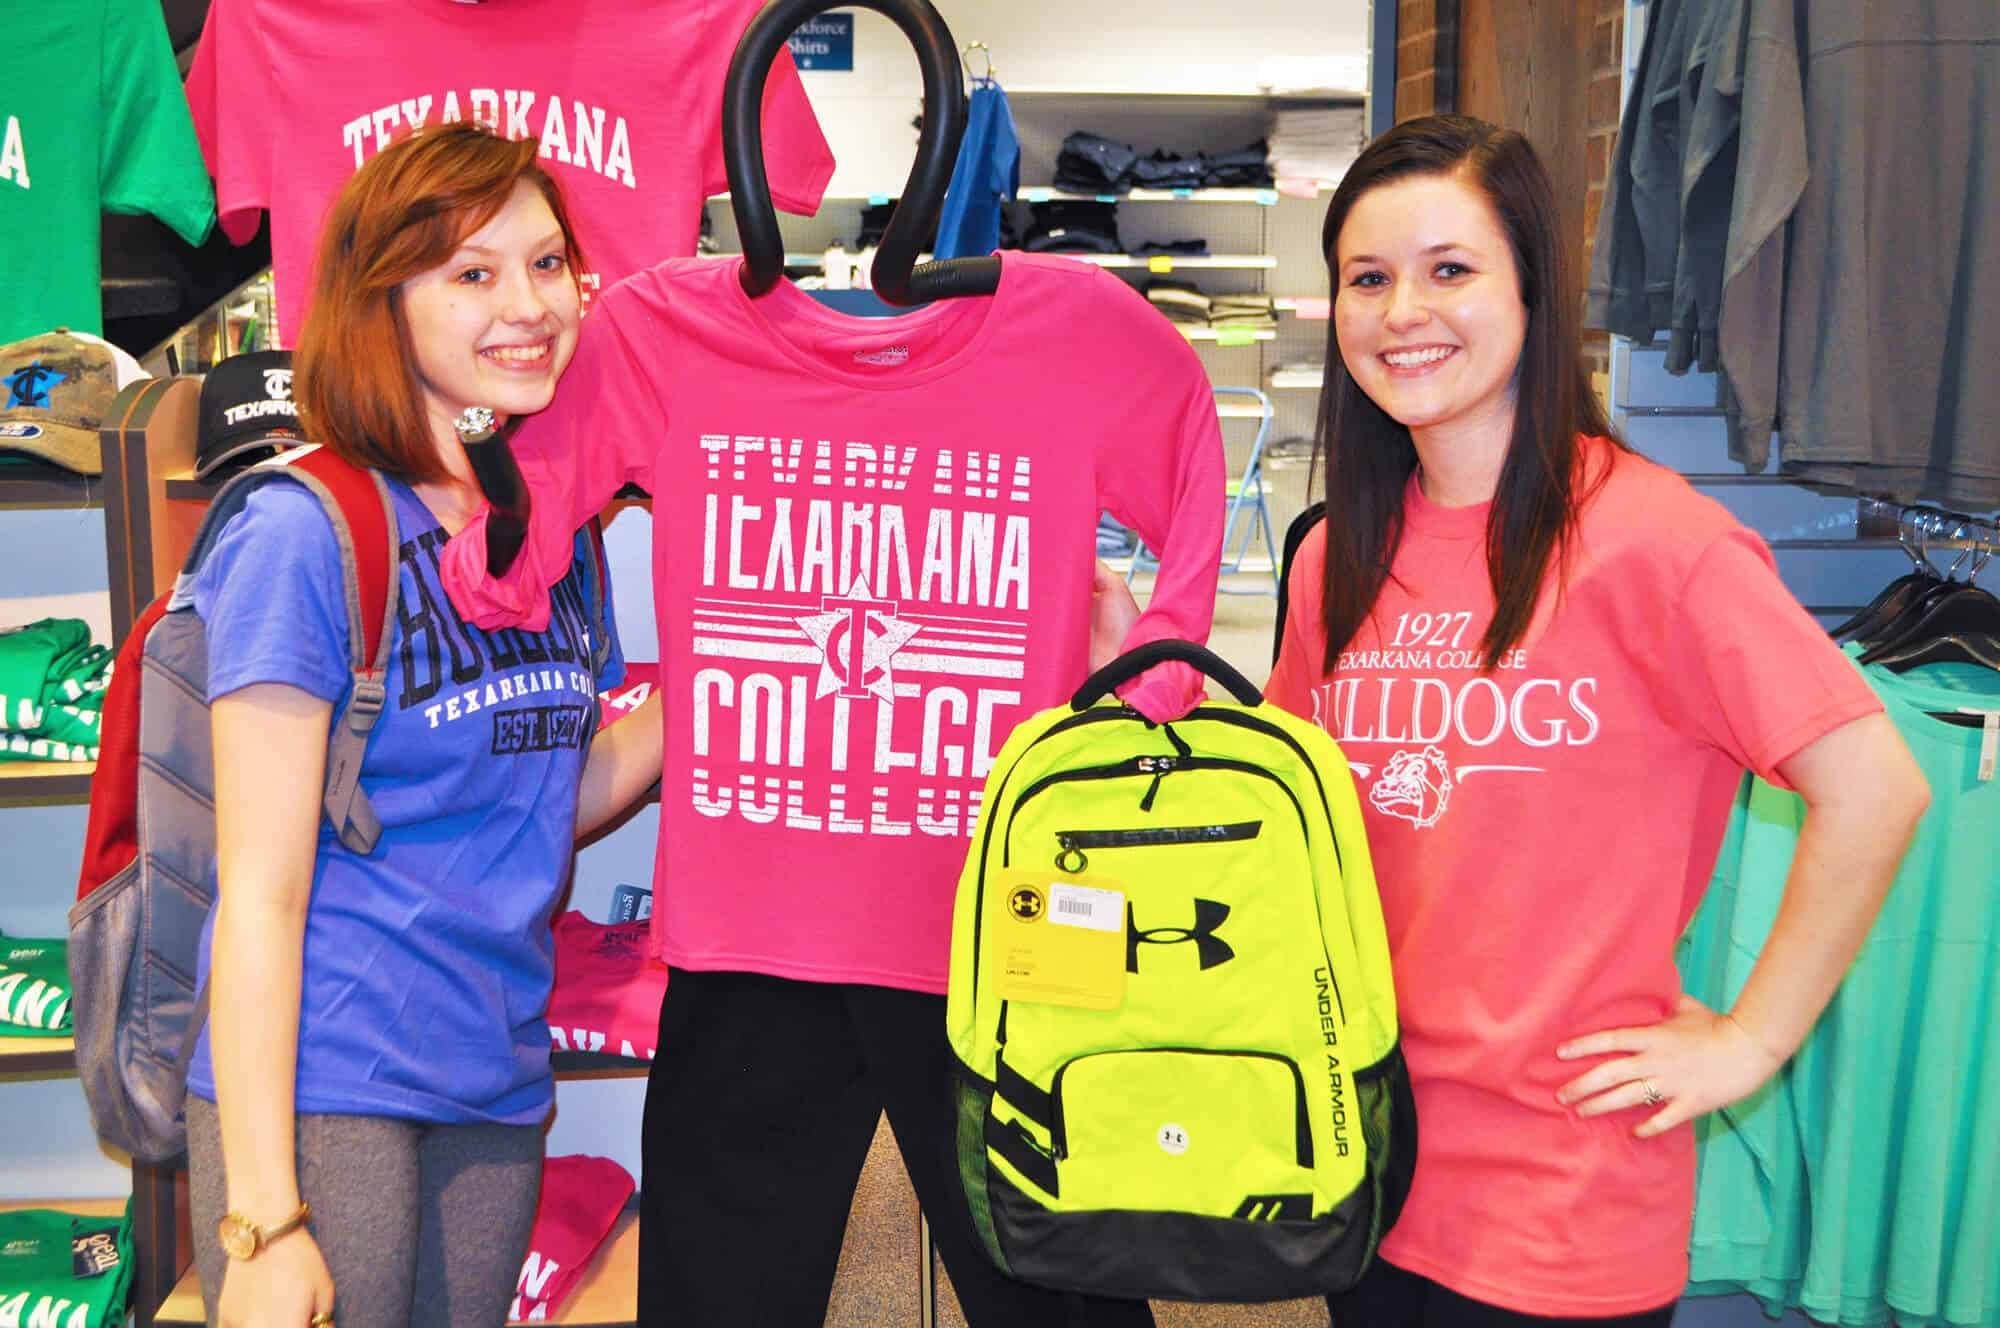 Stock up on TC gear in bookstore apparel sale